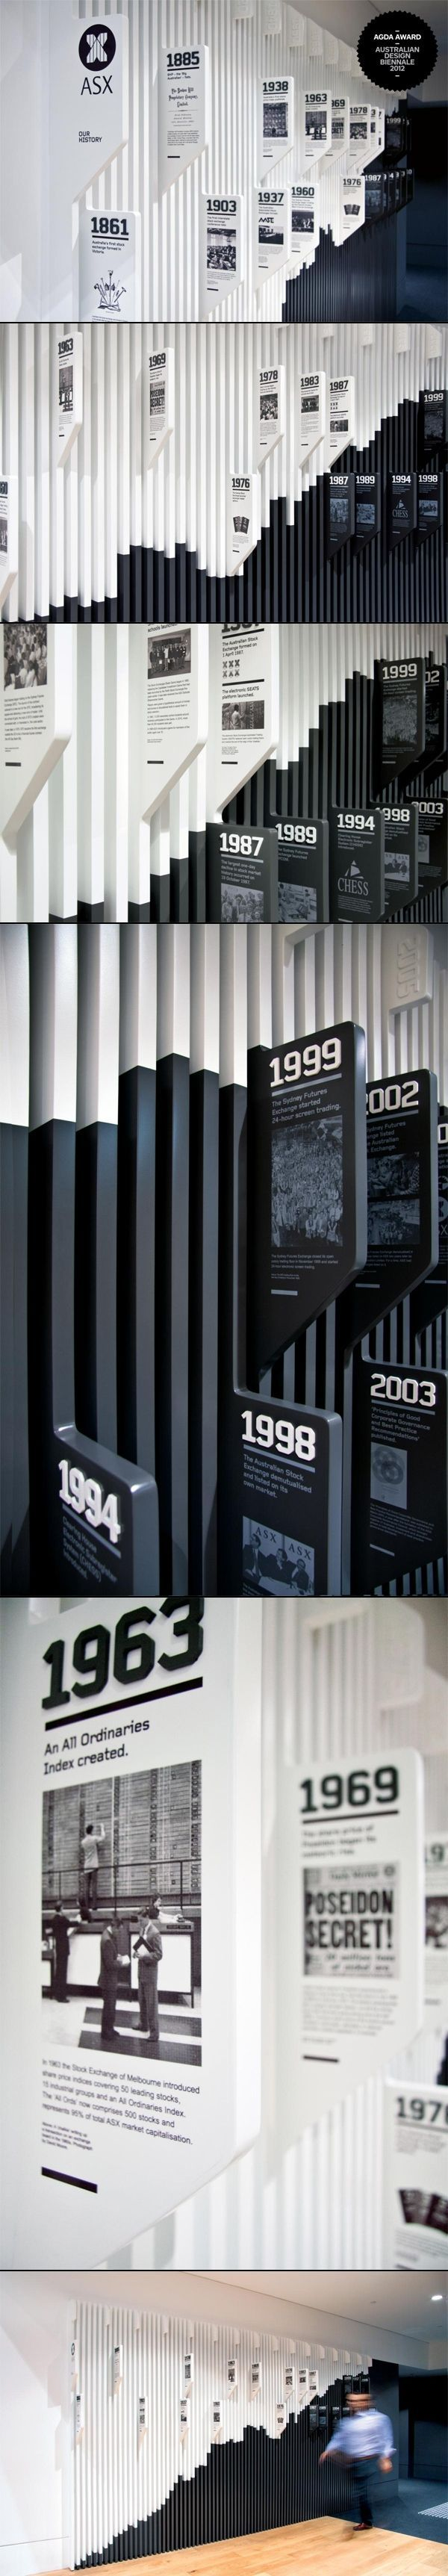 Interesting way to present a timeline or other story of your product or company - ASX Timeline Wall, Australia by There 2012